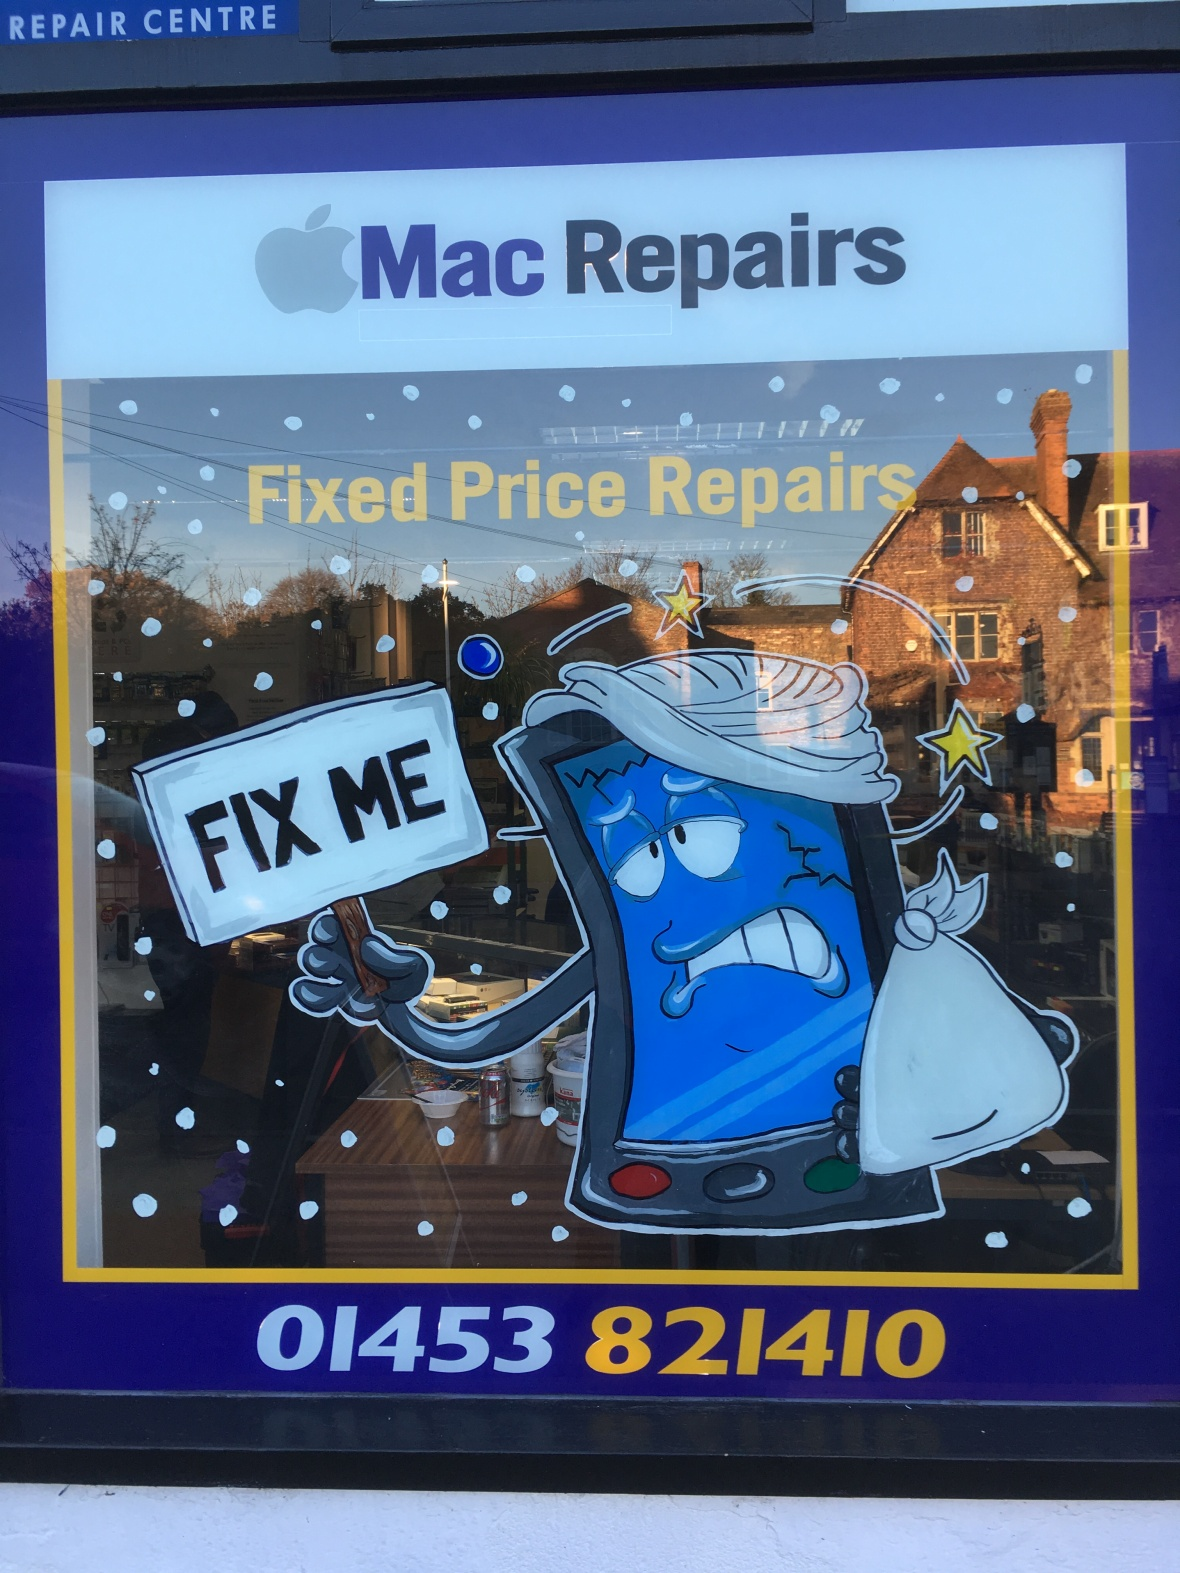 Custom we fix phones window graphics hand painted for shops and companies in Gloucestershire & Bristol